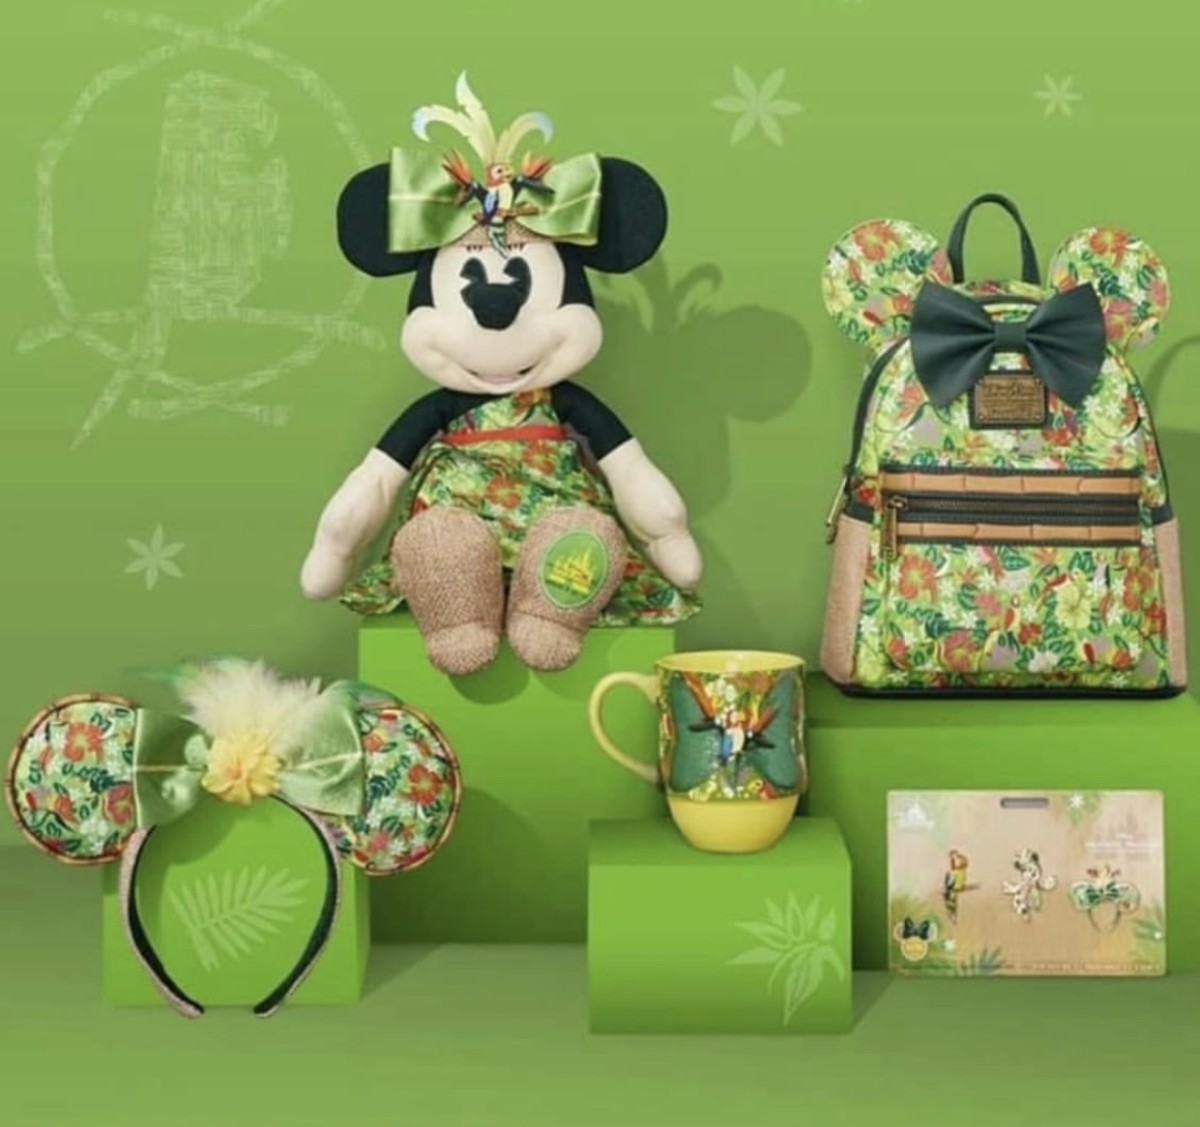 Minnie: The Main Attraction Collection, Enchanted Tiki Room 1